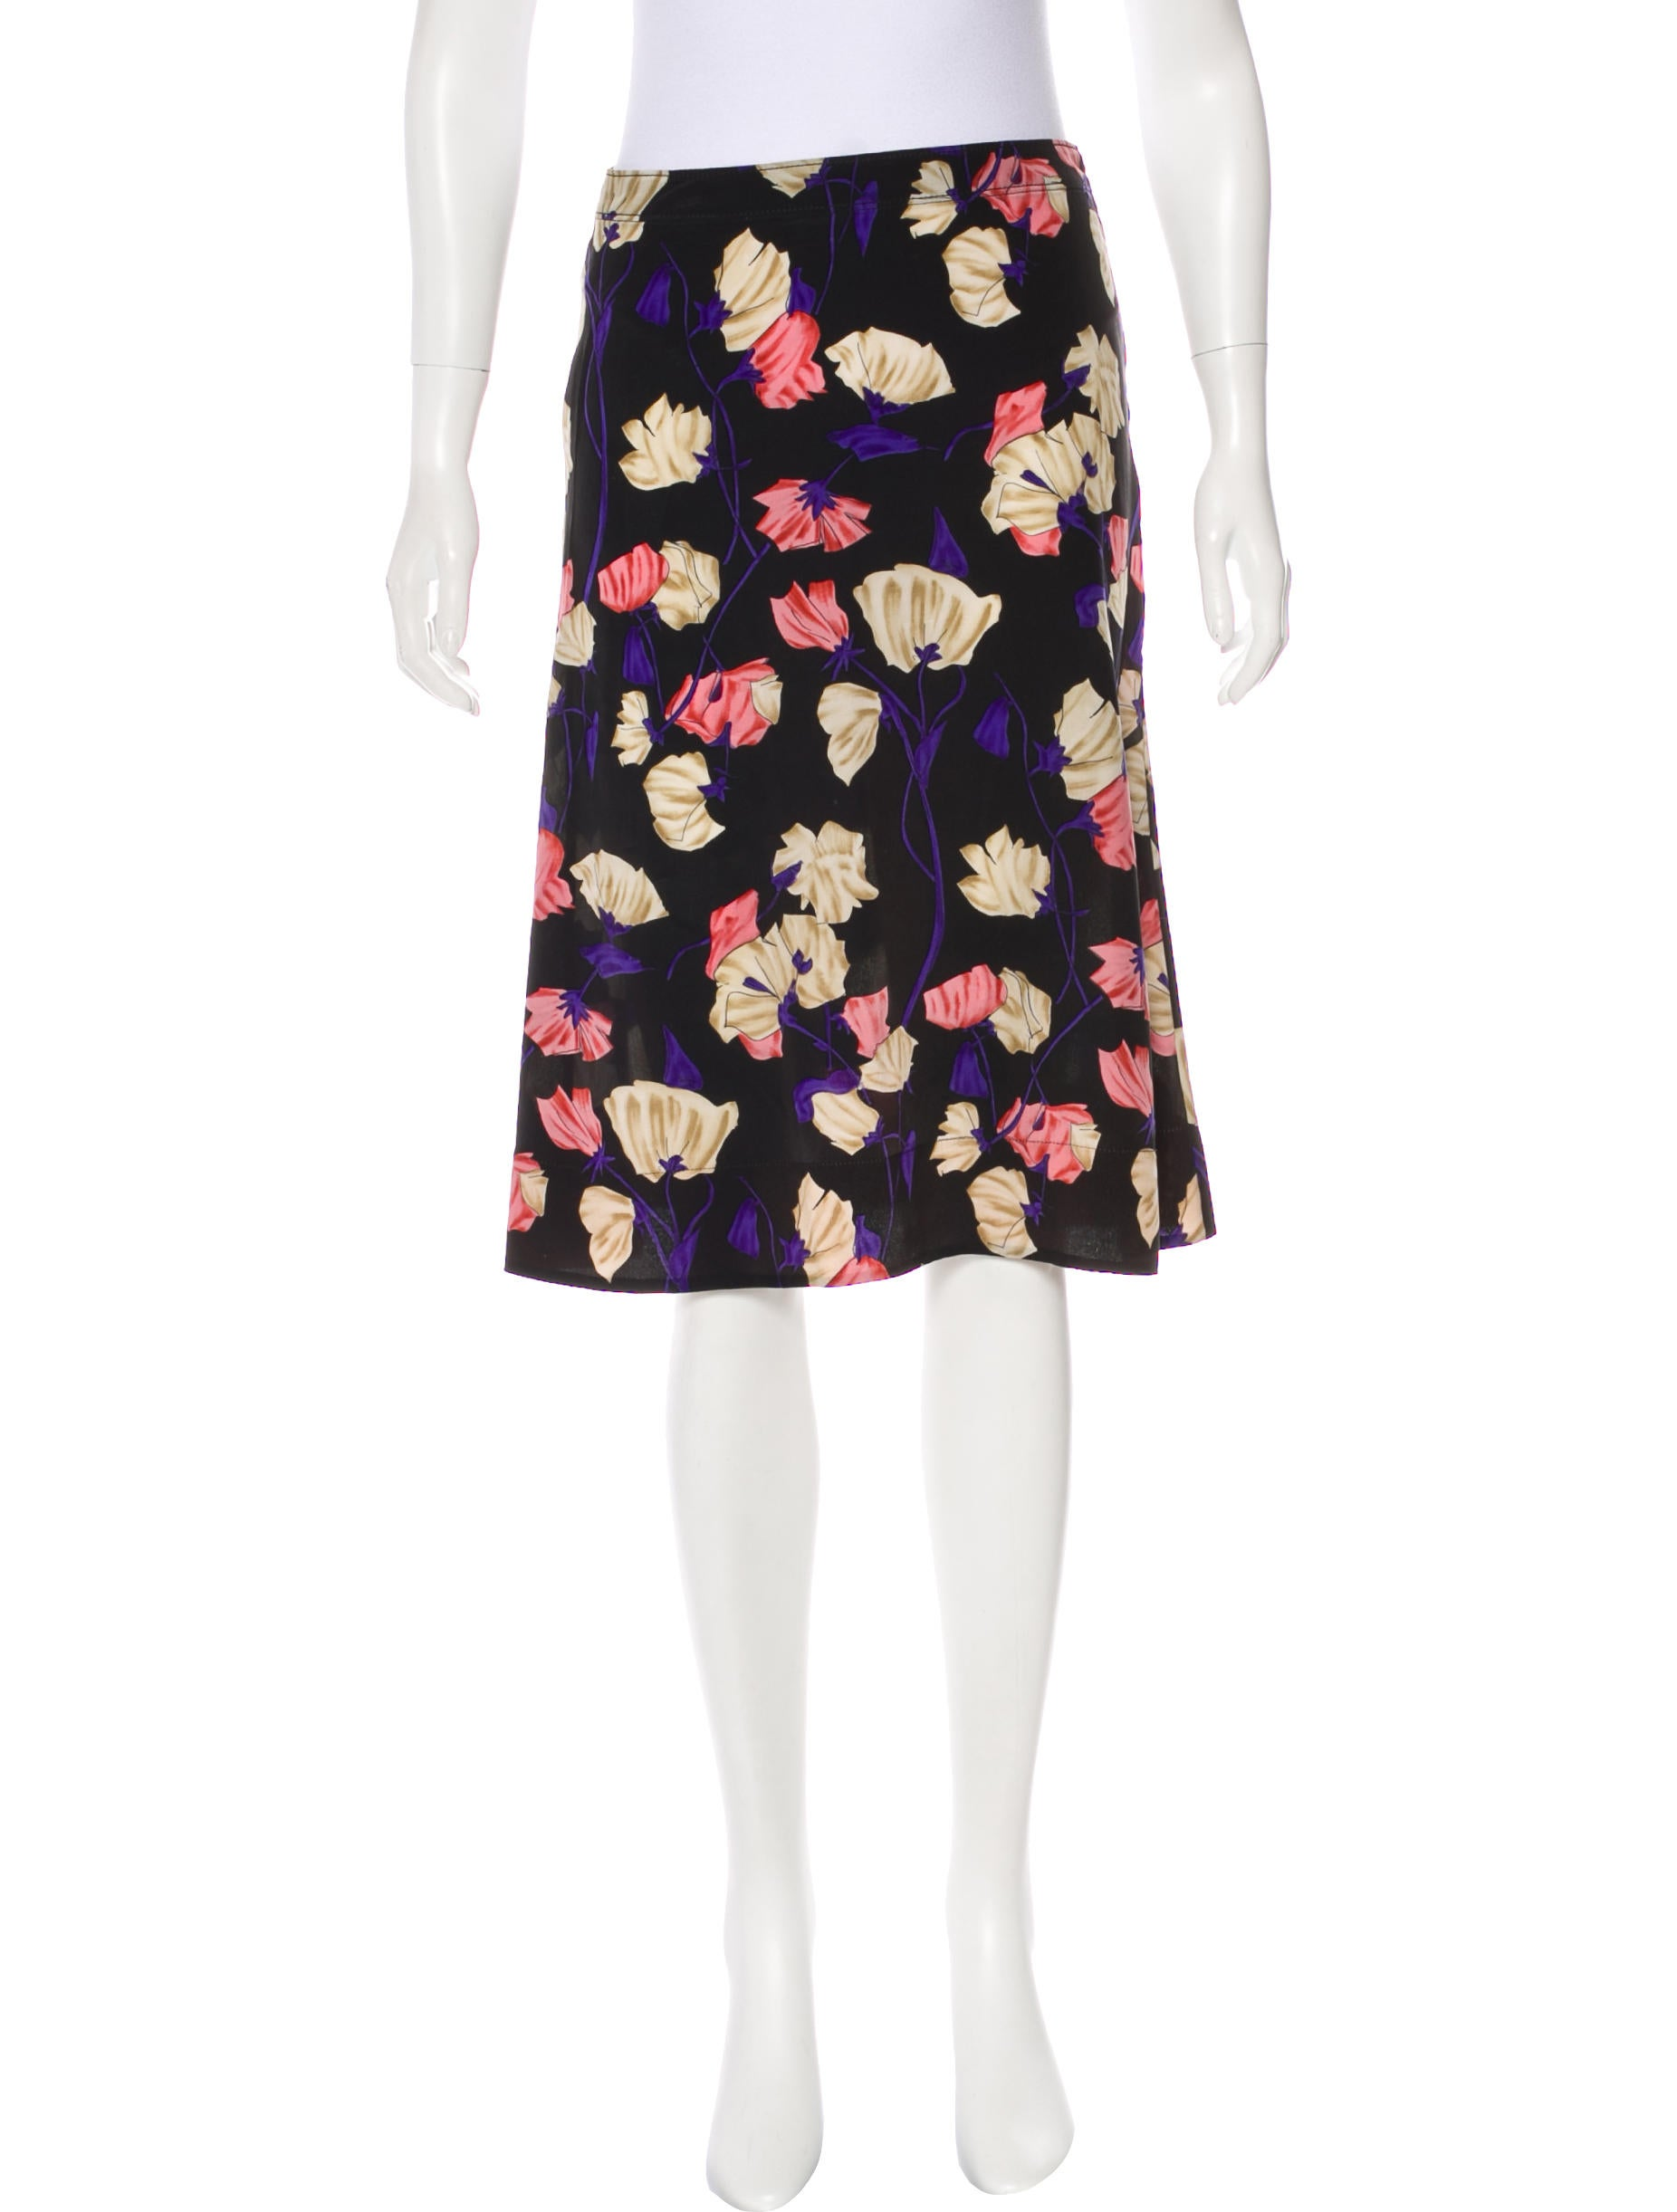 Shop For Sale Online Prada floral A-line skirt Buy Cheap Buy Quality Outlet Store Free Shipping Shopping Online Cheap Sale Sneakernews WZswO